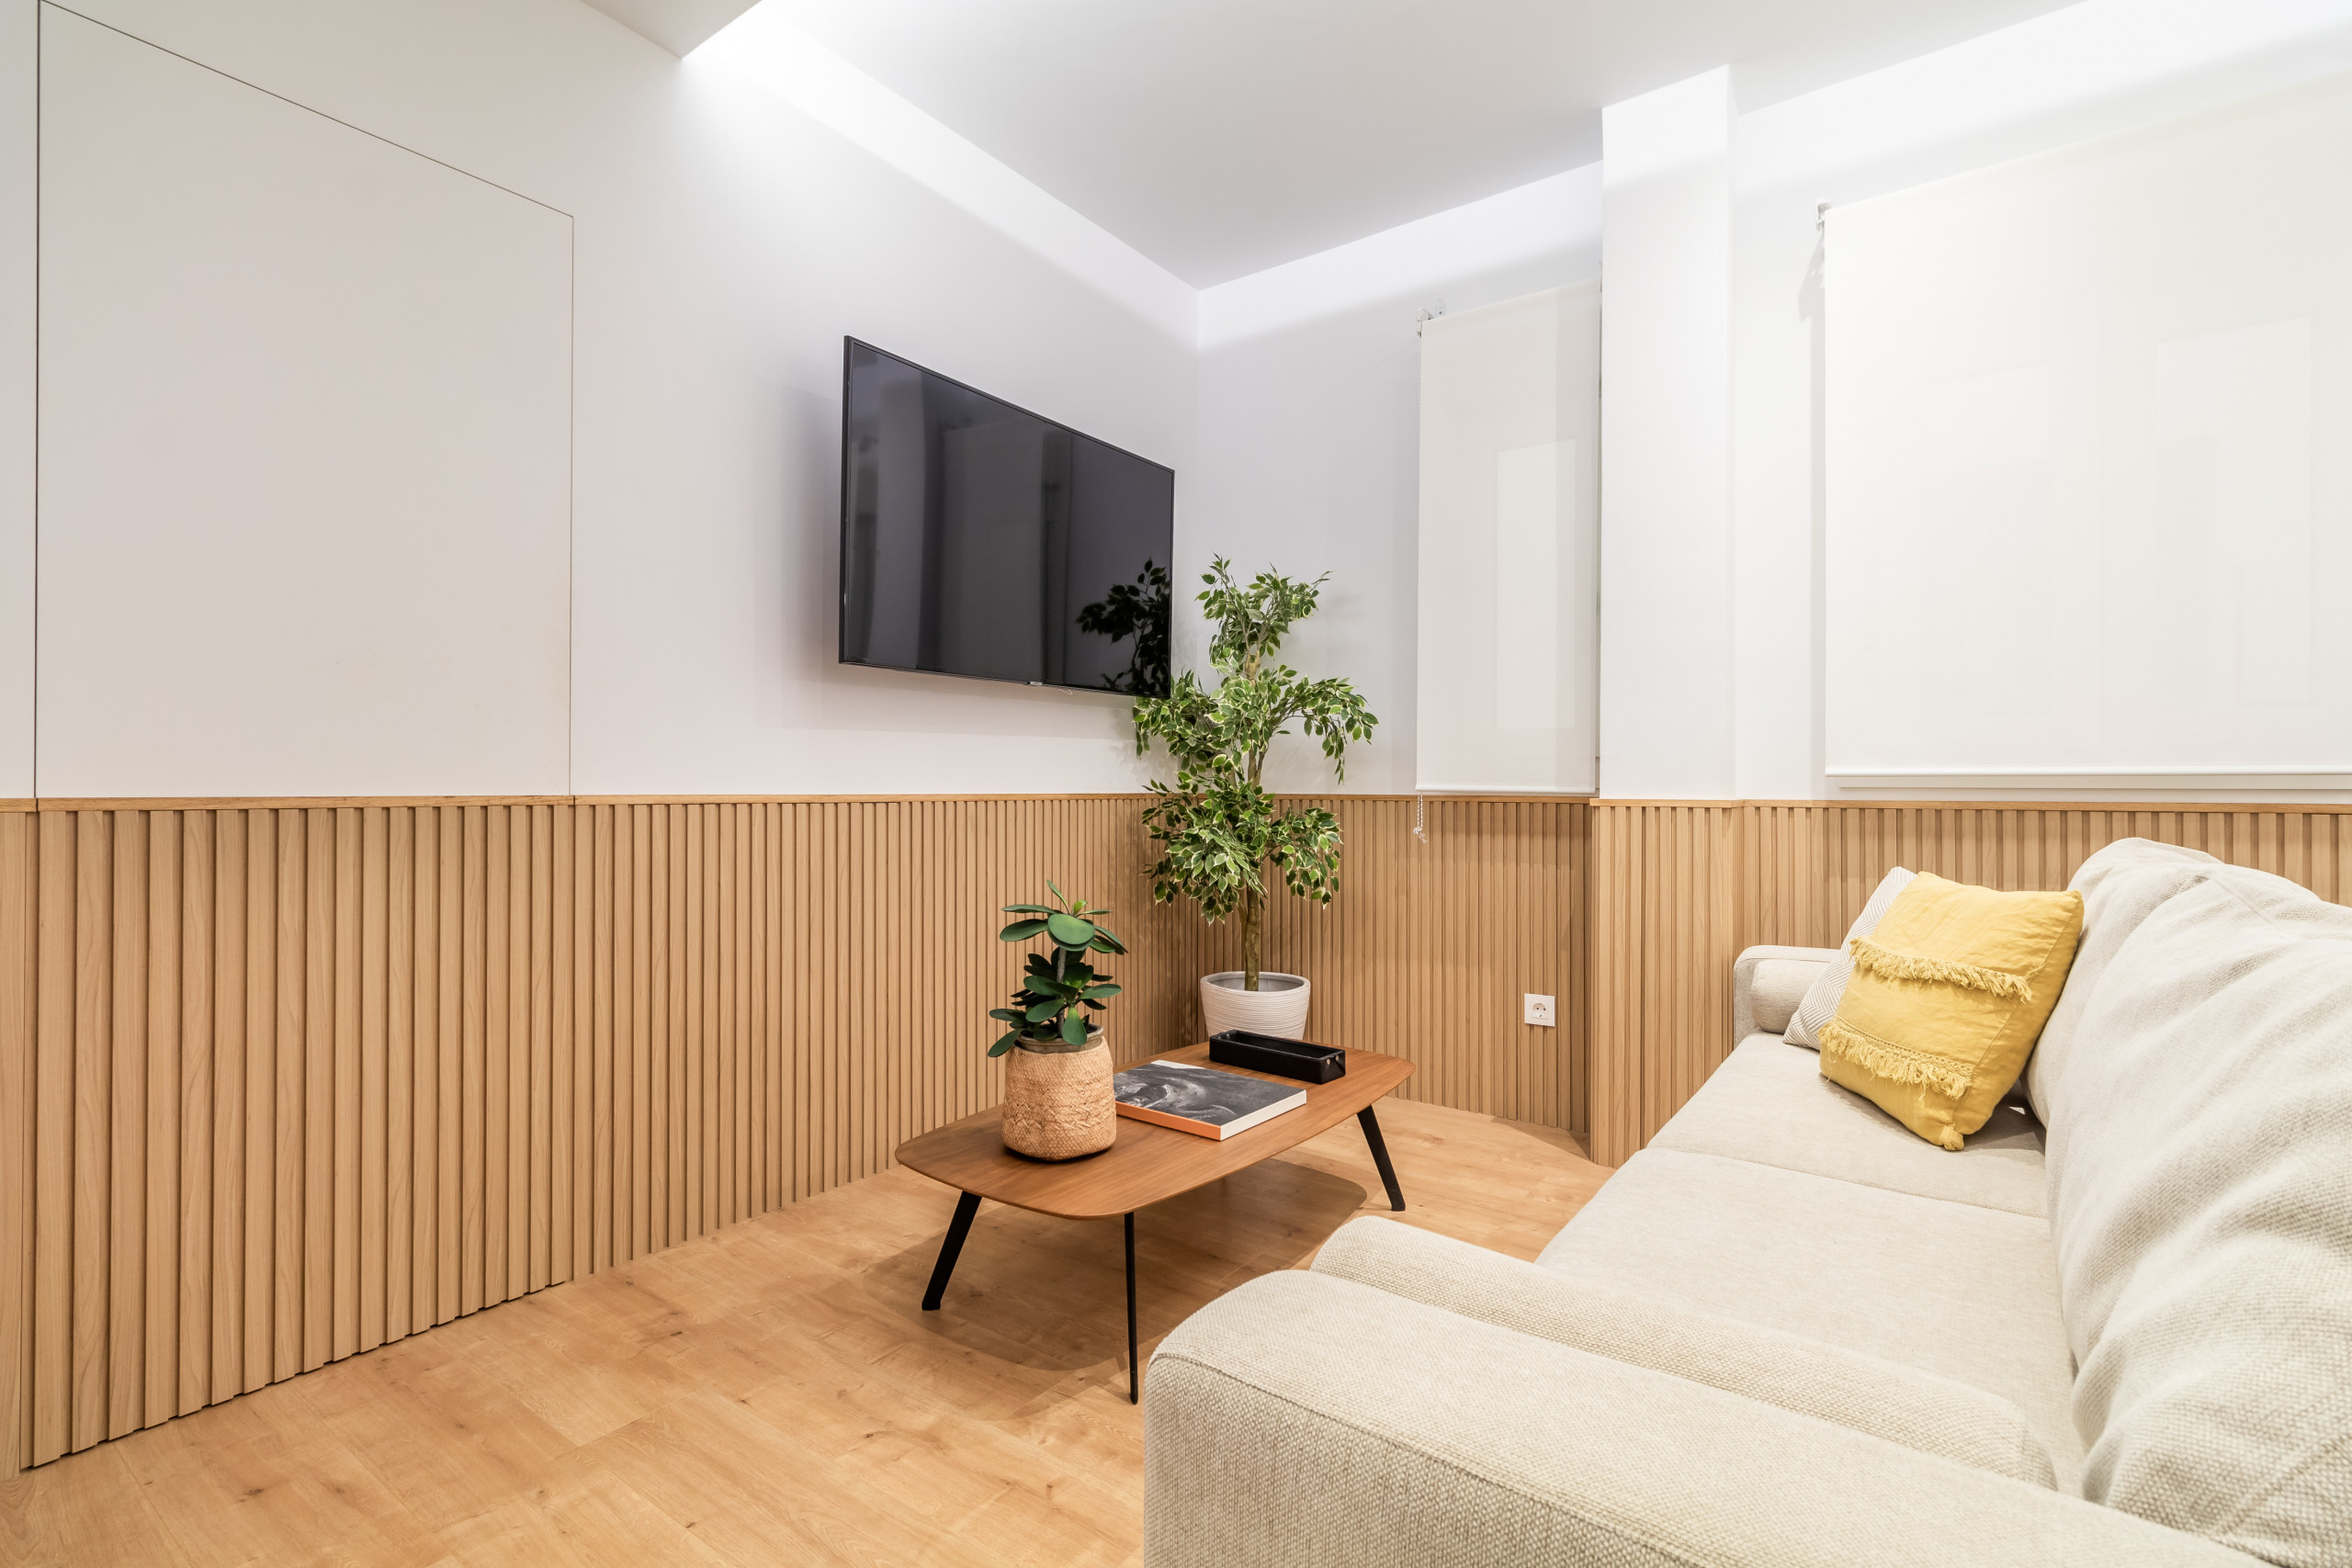 in Madrid - 2 bedroom apartment located in Salamanca neighborhood. Full equipped, with A/C and internet